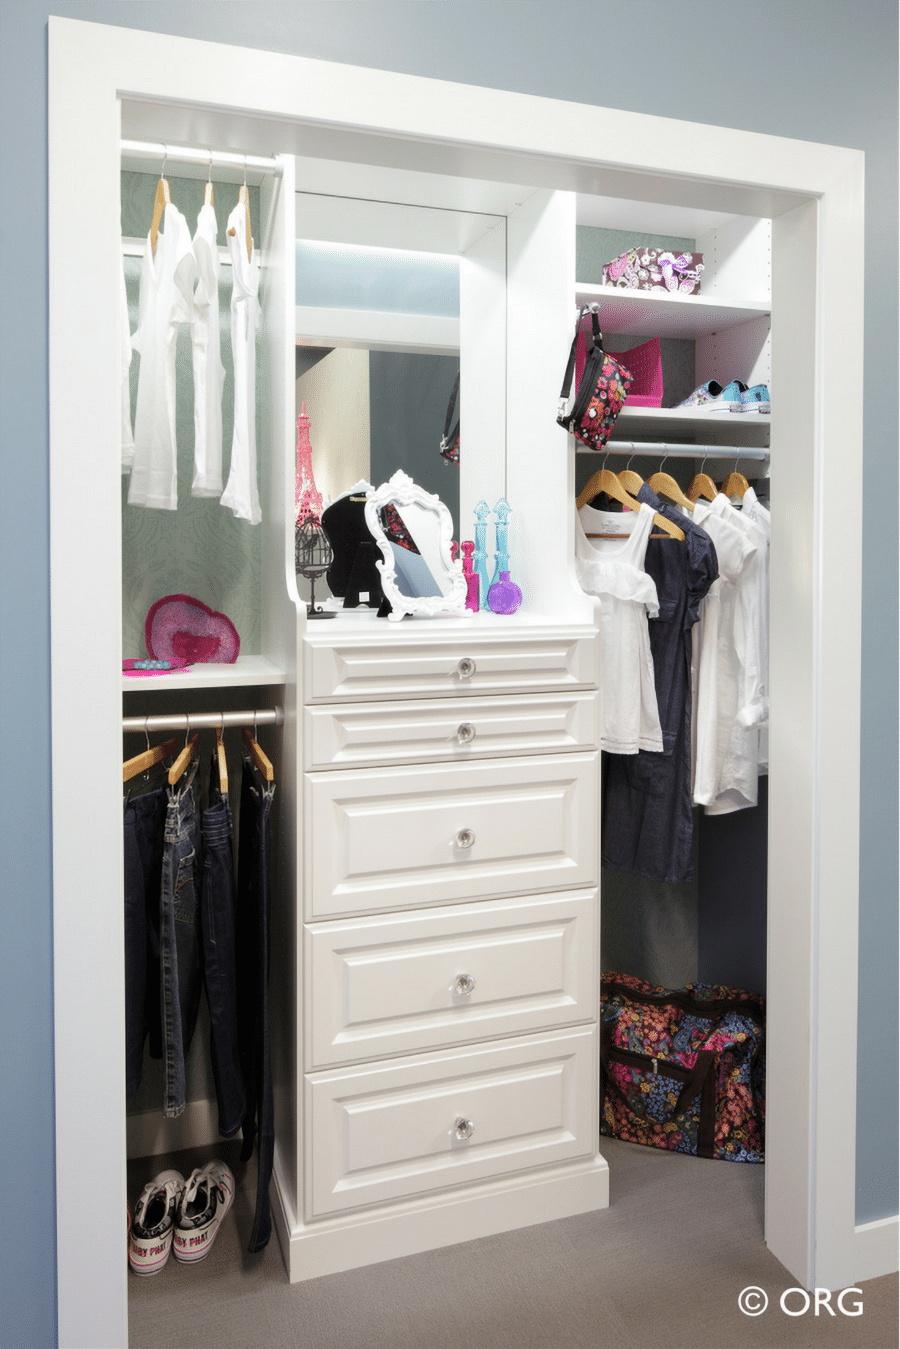 Do #7 Floor mounted reach in closet without doors allows you to add drawers Columbus | Innovate Home Org #CustomOrganization #ReachInCloset #StorageOrganization